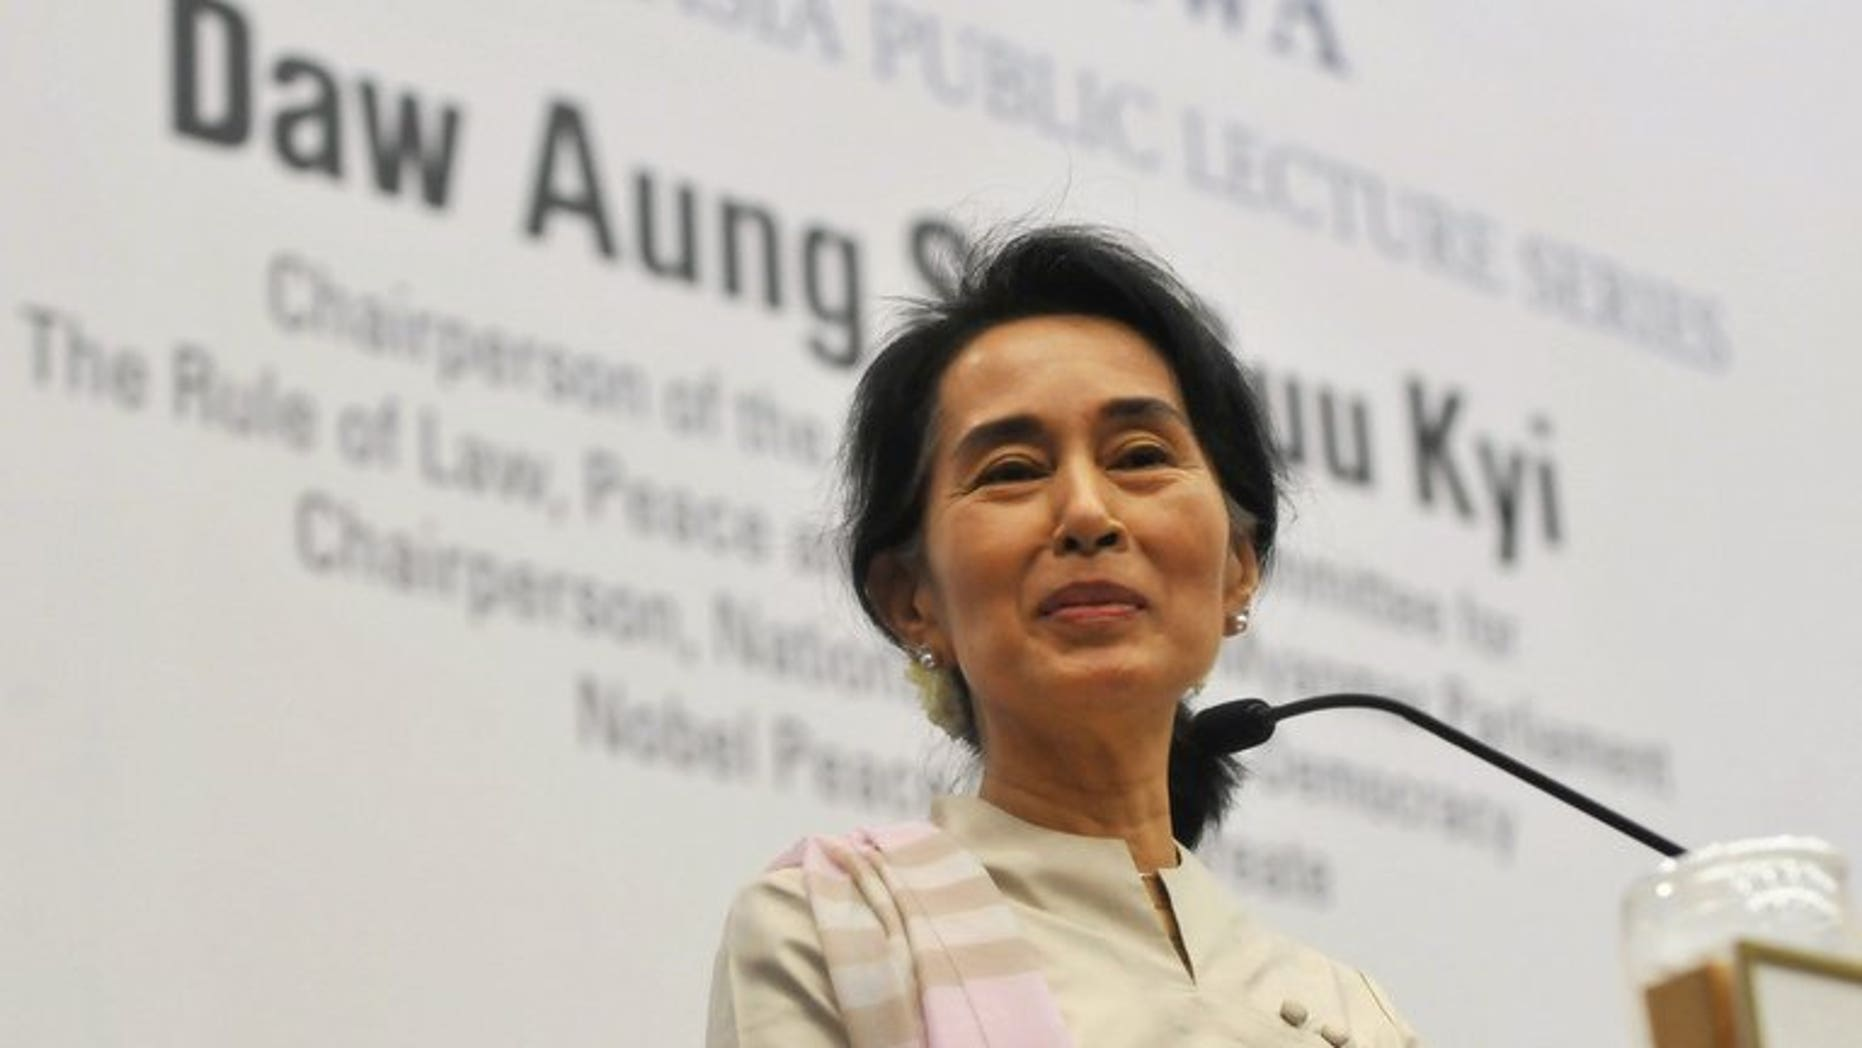 Nobel laureate Aung San Suu Kyi delivers a speech in Singapore, on September 22, 2013. Thousands of Myanmar nationals living in Singapore have given Suu Kyi an emotional welcome as the democracy icon urged them to consider coming home to help rebuild the impoverished nation.